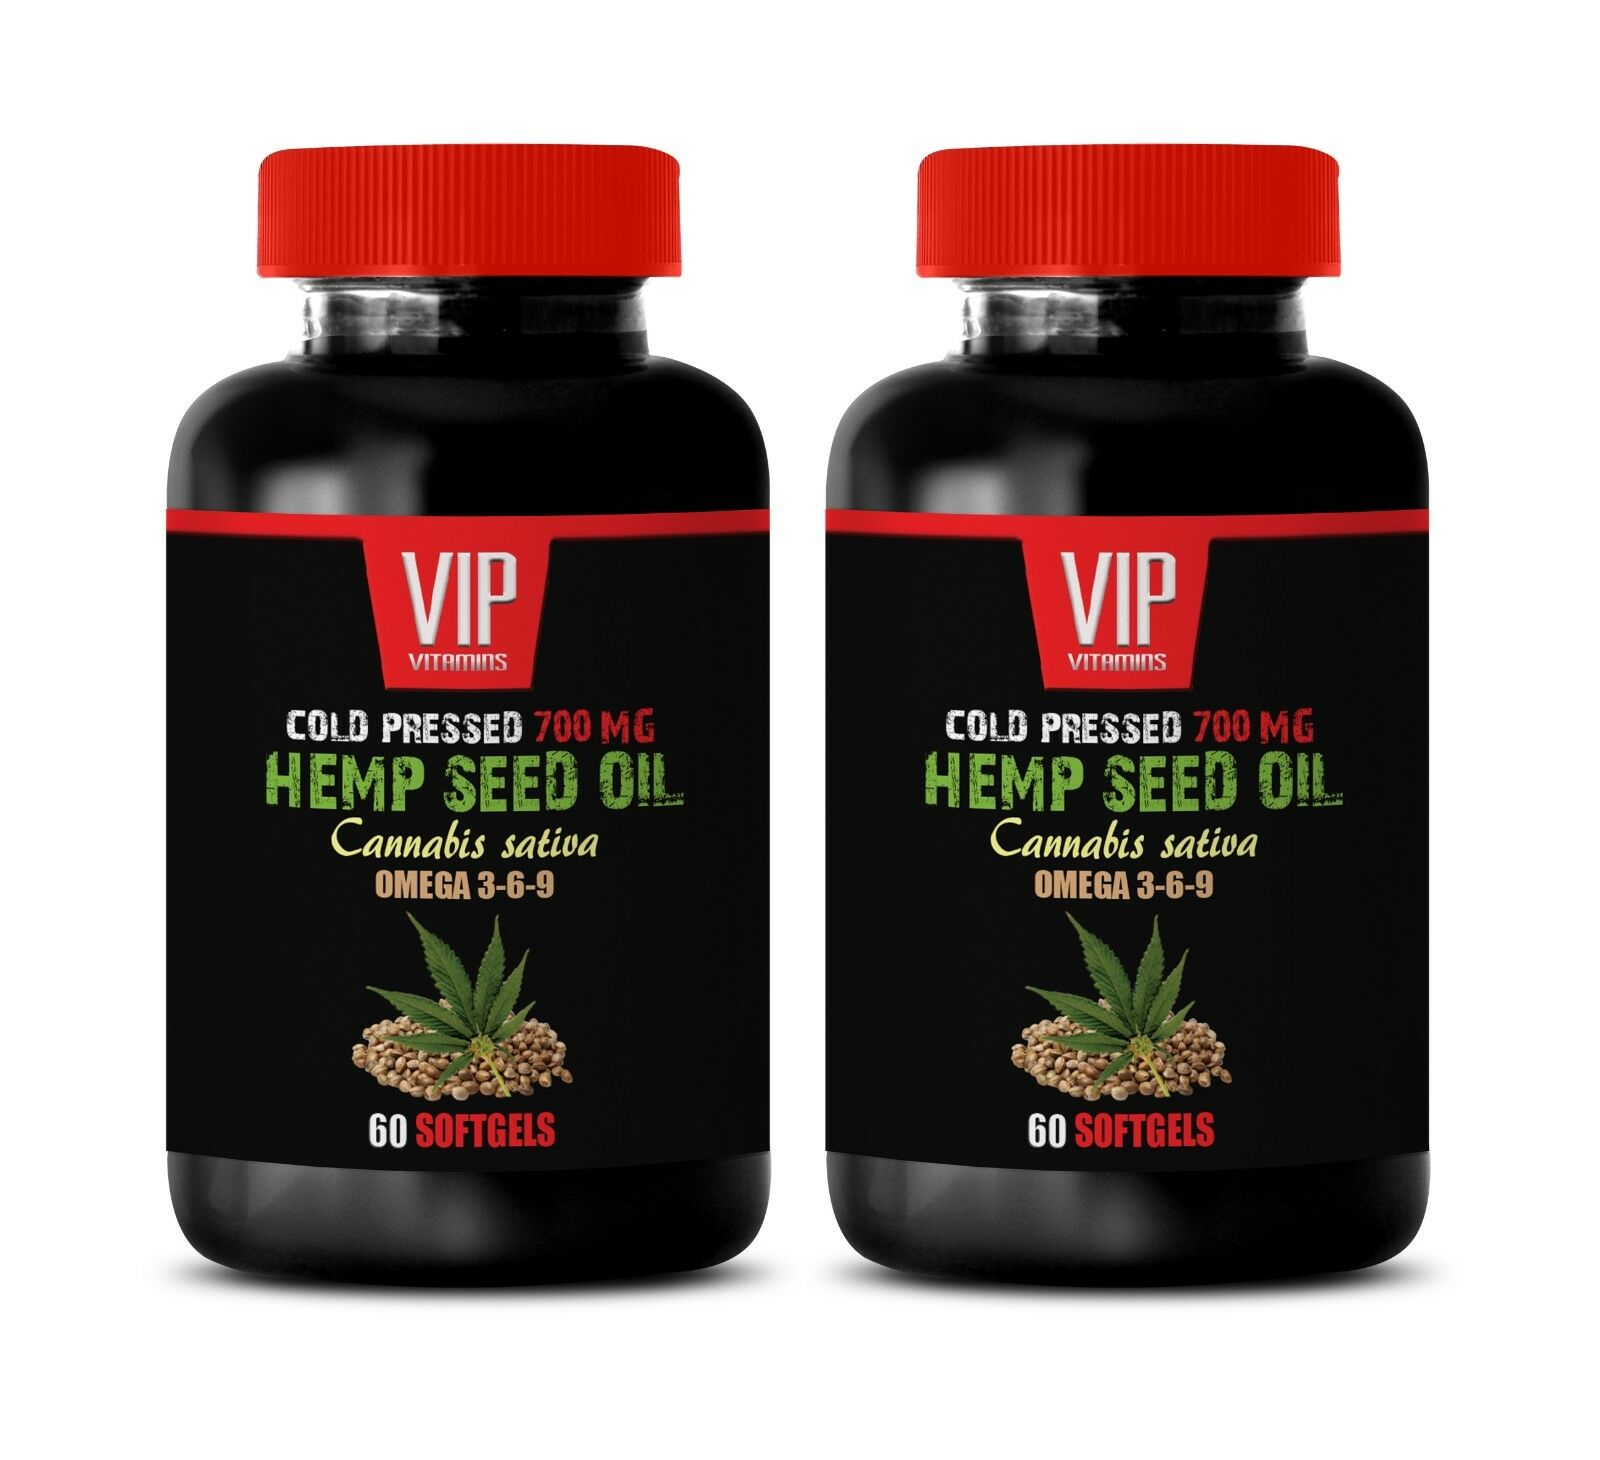 hemp oil in pill form - COLD PRESSED HEMP SEED OIL 700MG 2B - antioxidant